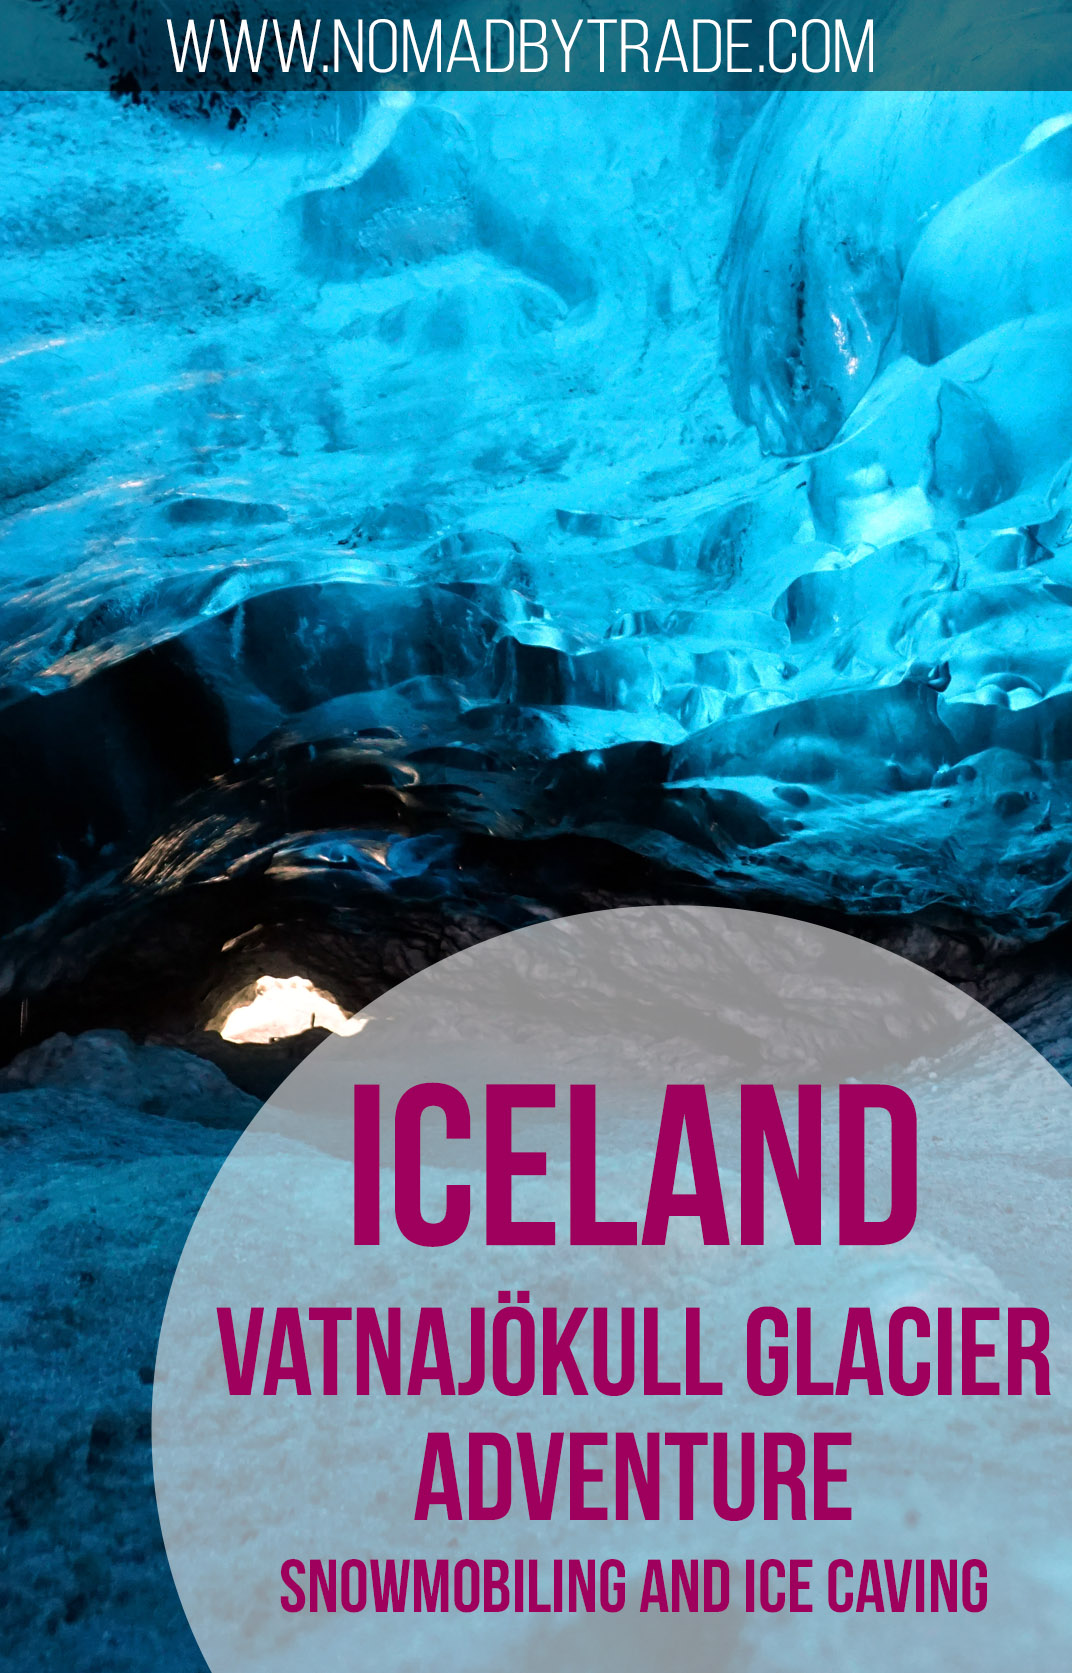 Snowmobiling and ice caving in the Vatnajokull Glacier in southeast Iceland